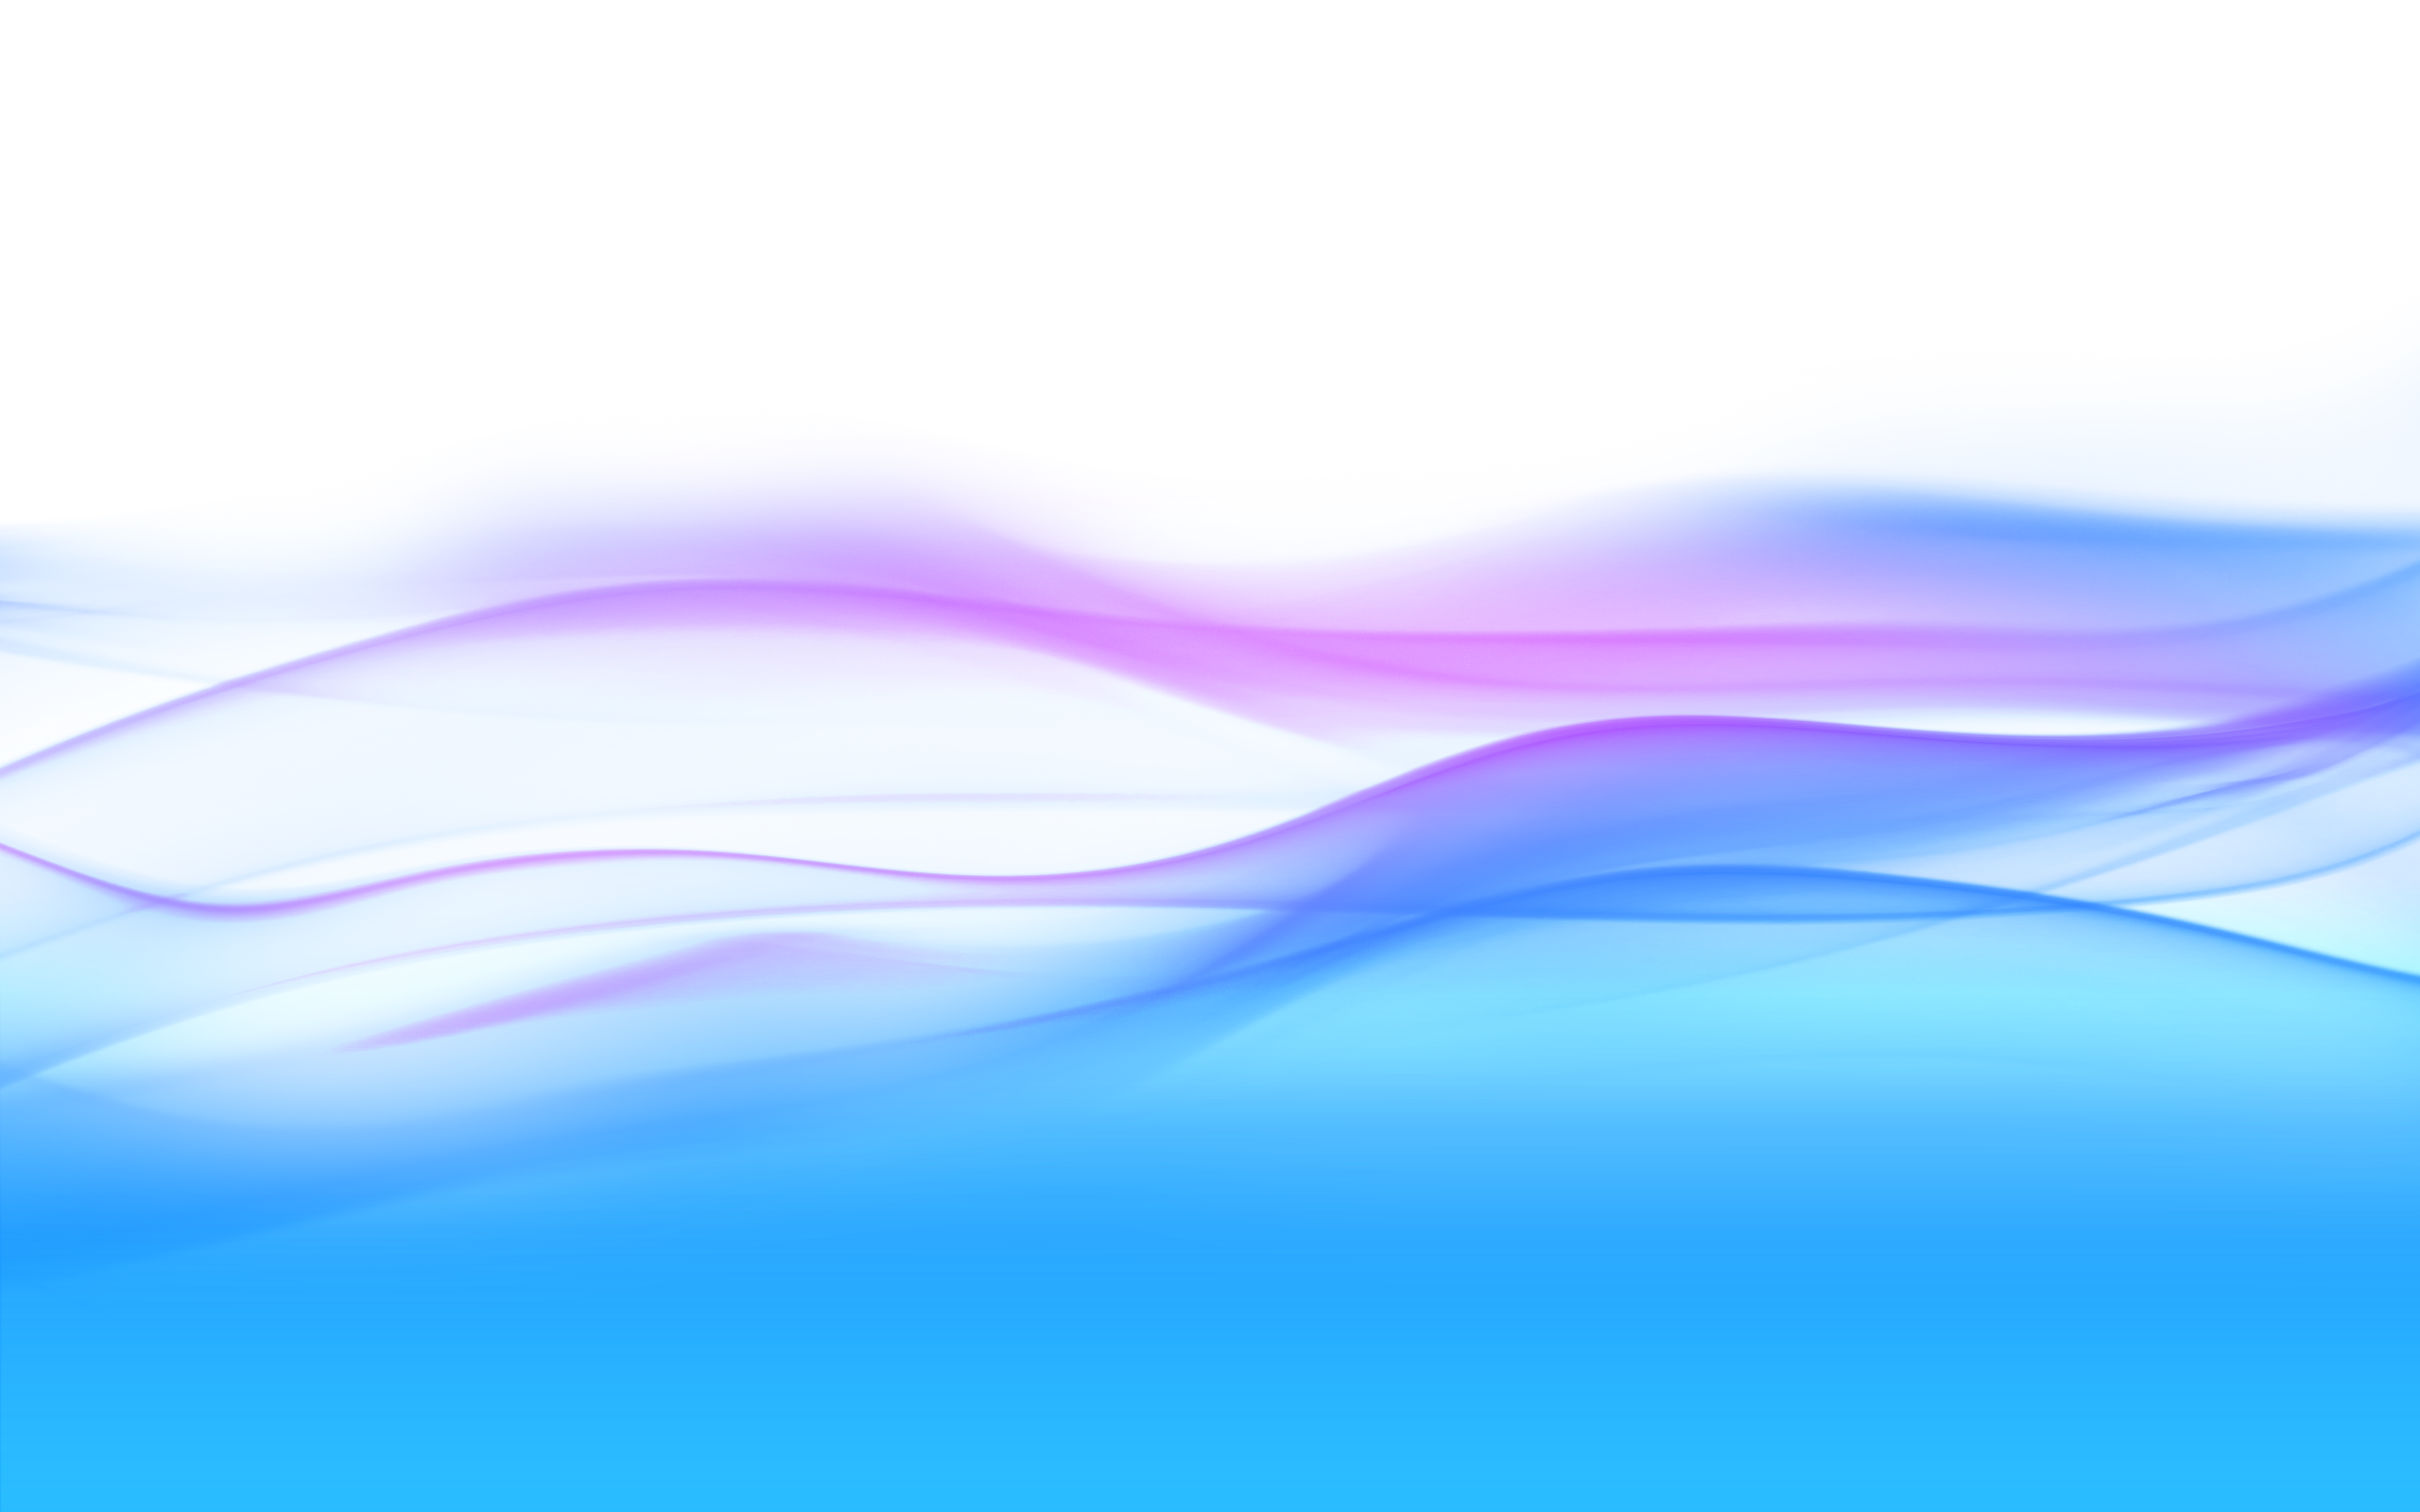 Waves PNG HD - 125915